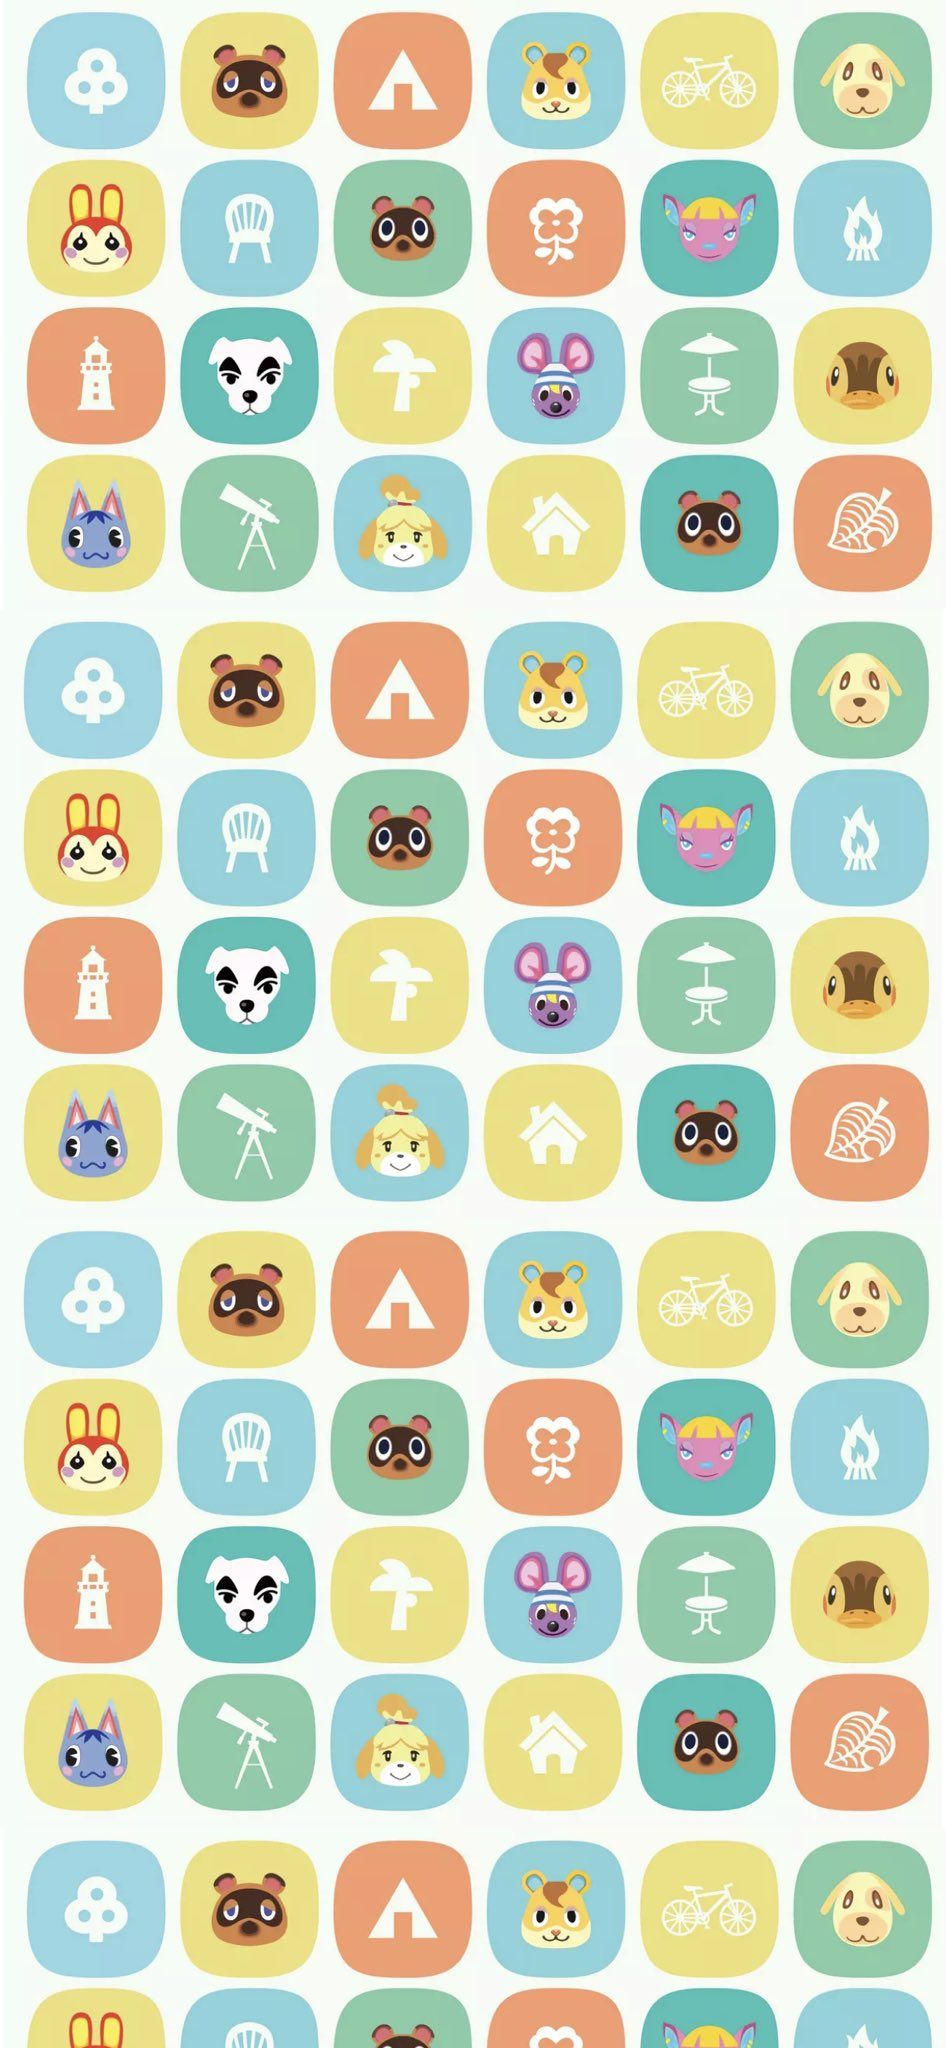 Animal Crossing New Horizons Mobile And Desktop Wallpapers Acpocketnews Animal Crossing Animal Crossing Leaf Animal Crossing Qr